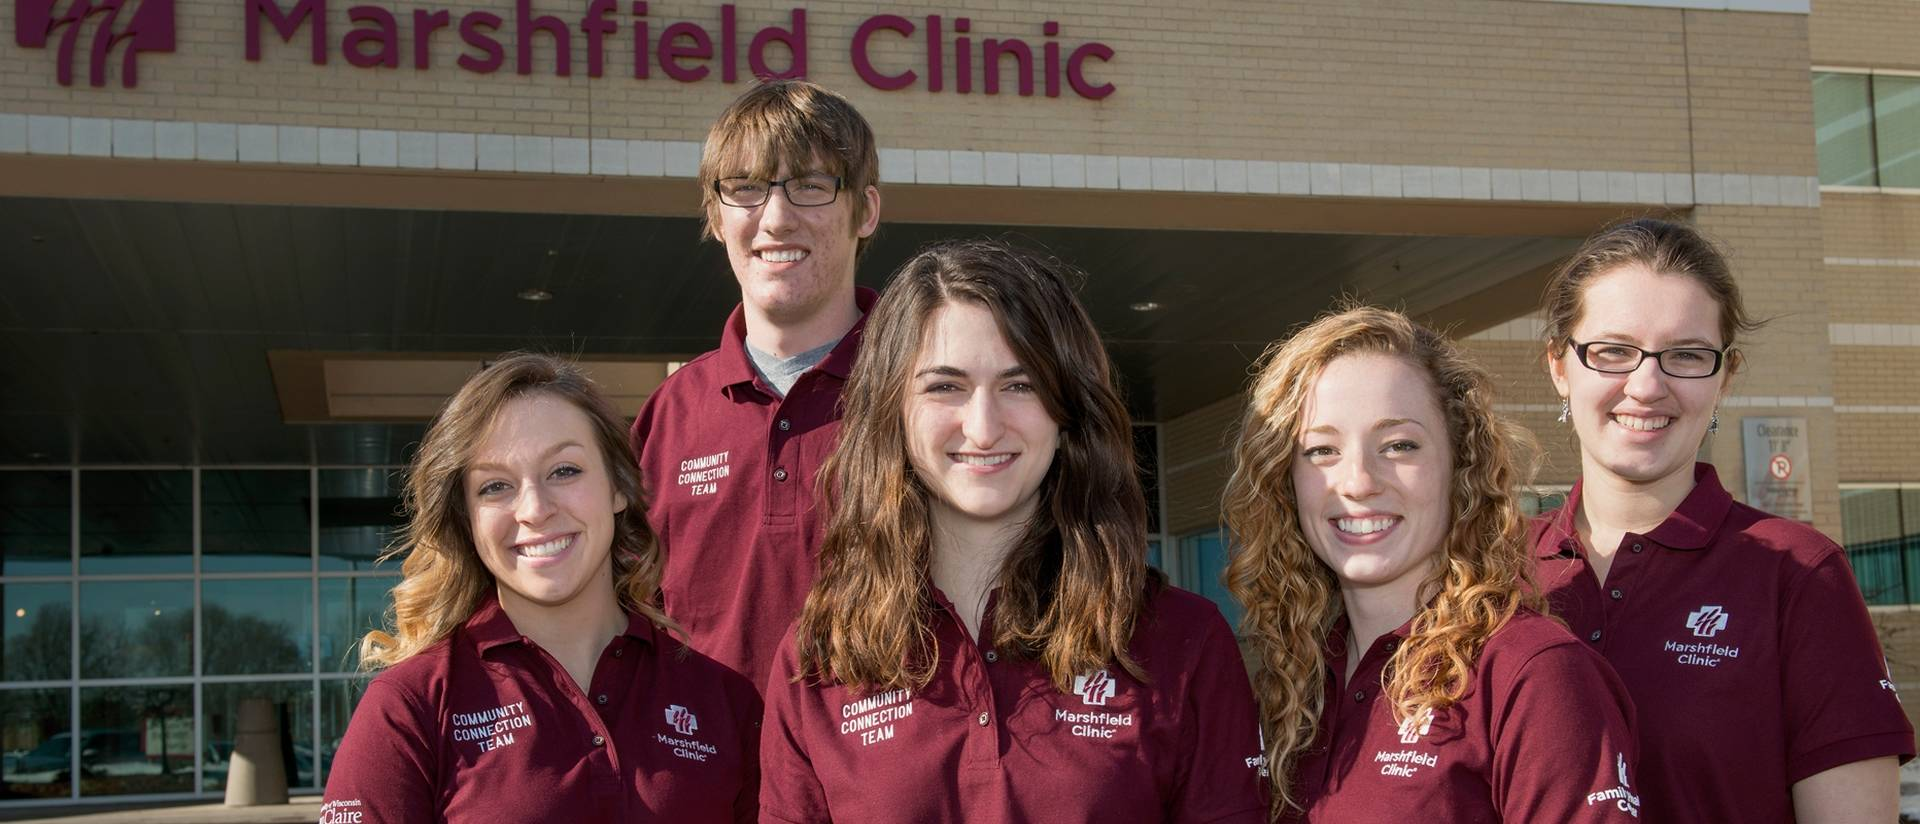 Marshfield Clinic Connections